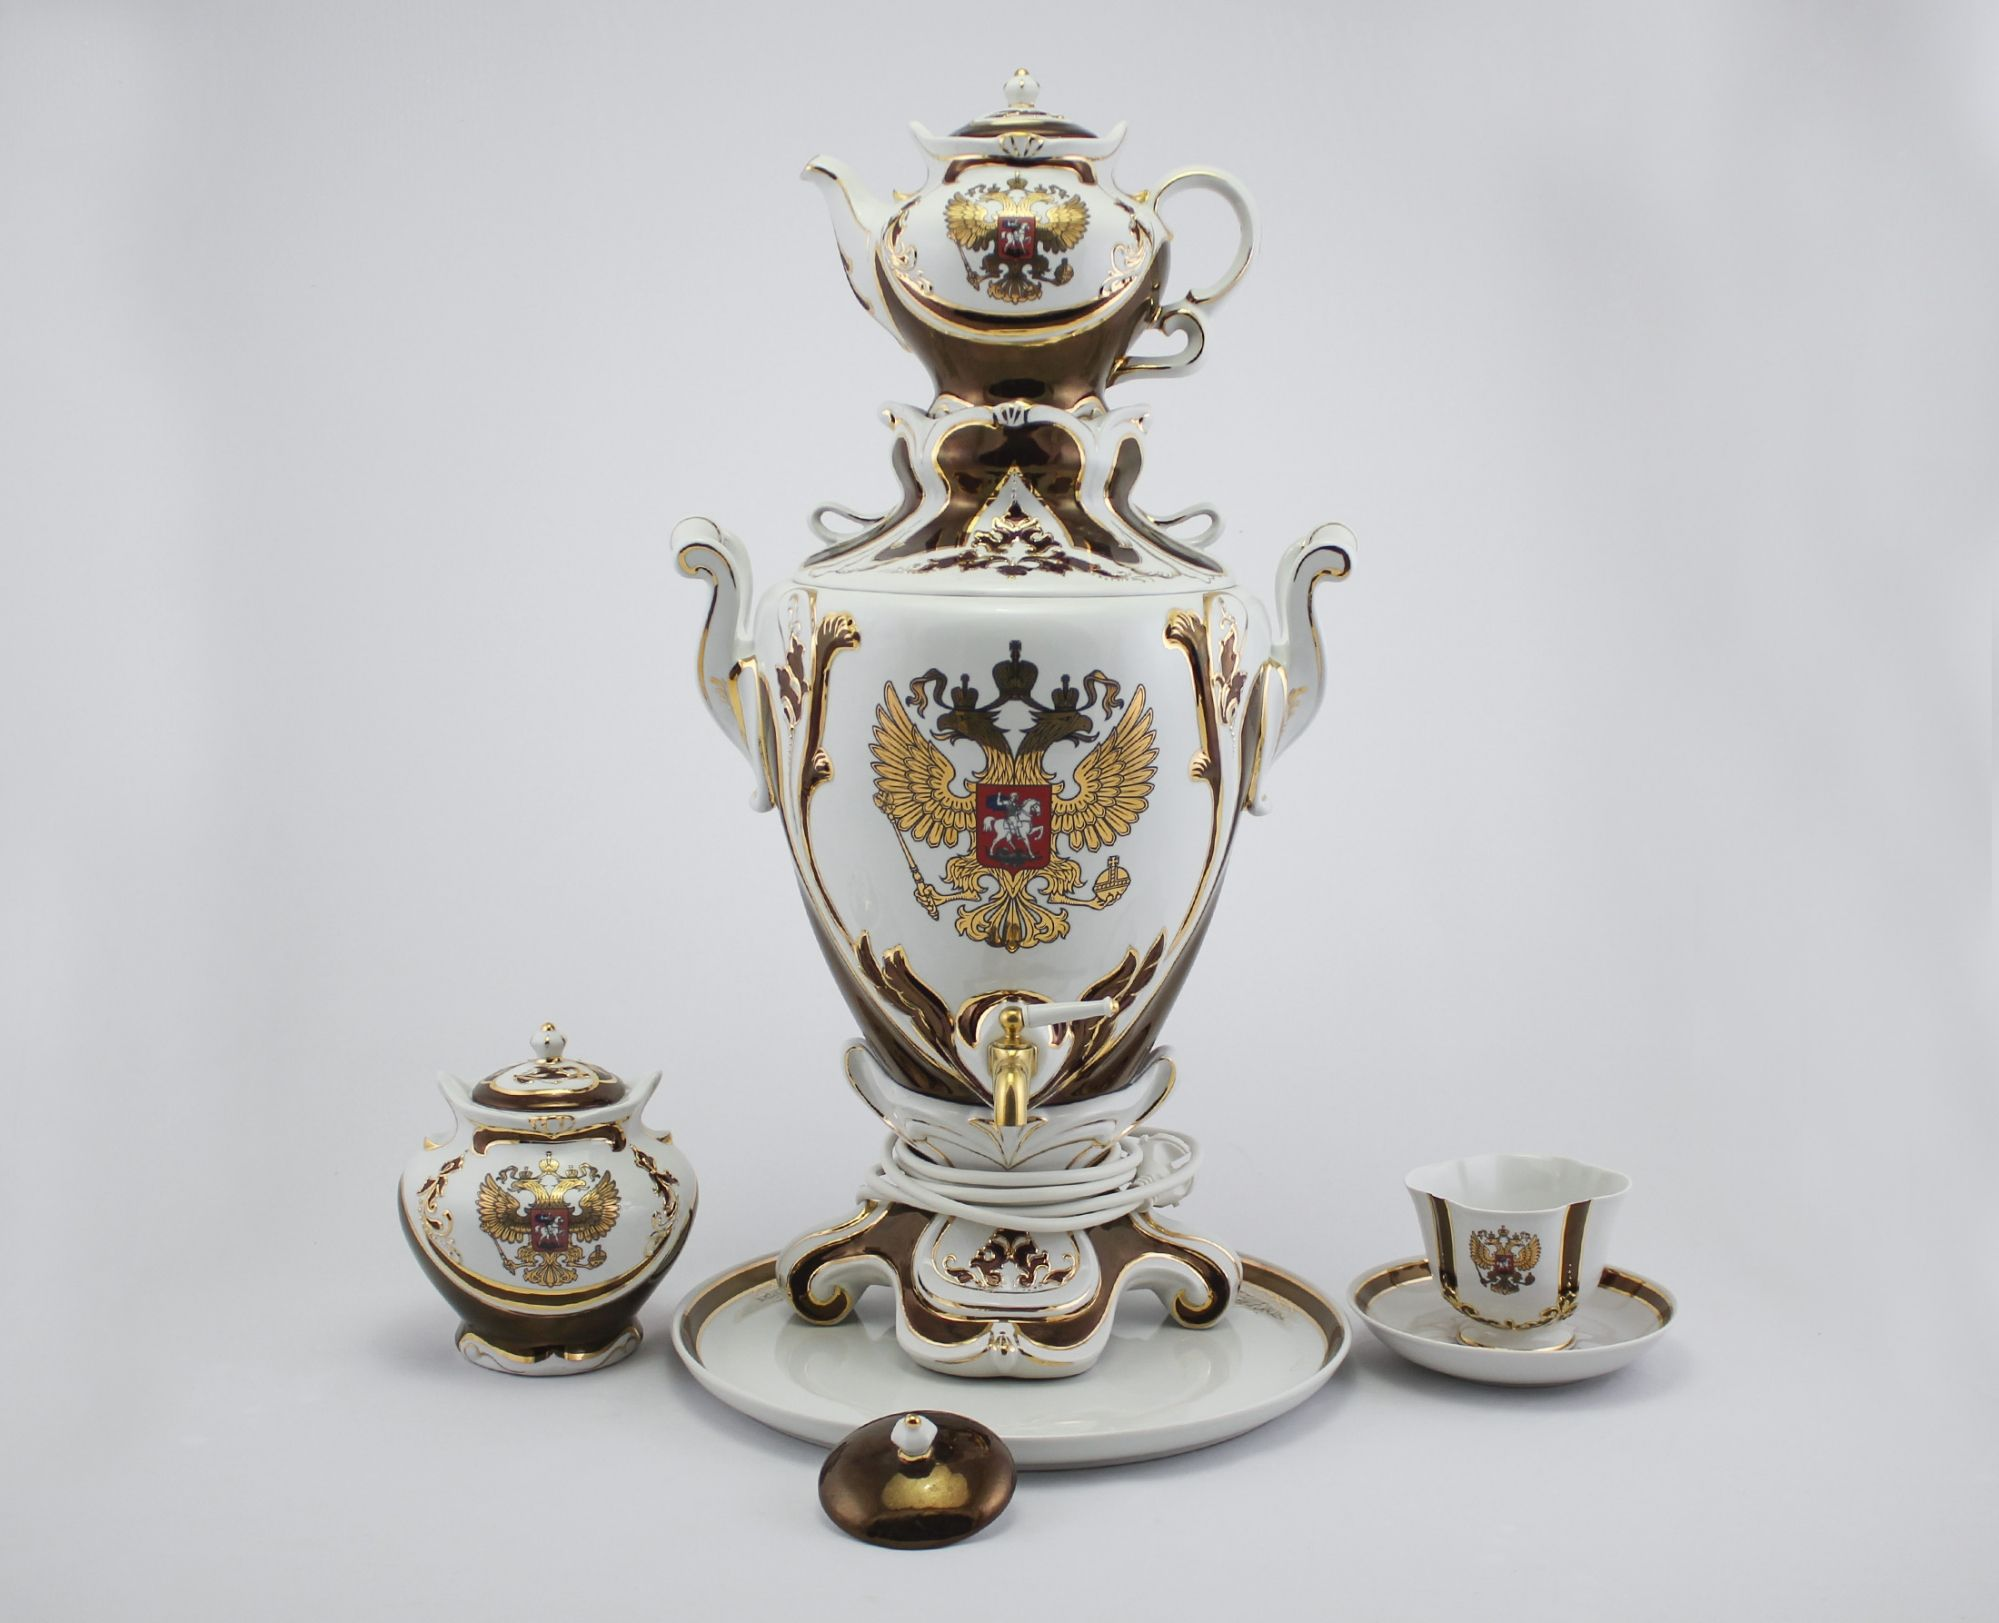 Delta-X / Porcelain electric samovar model 1 with tea pairs